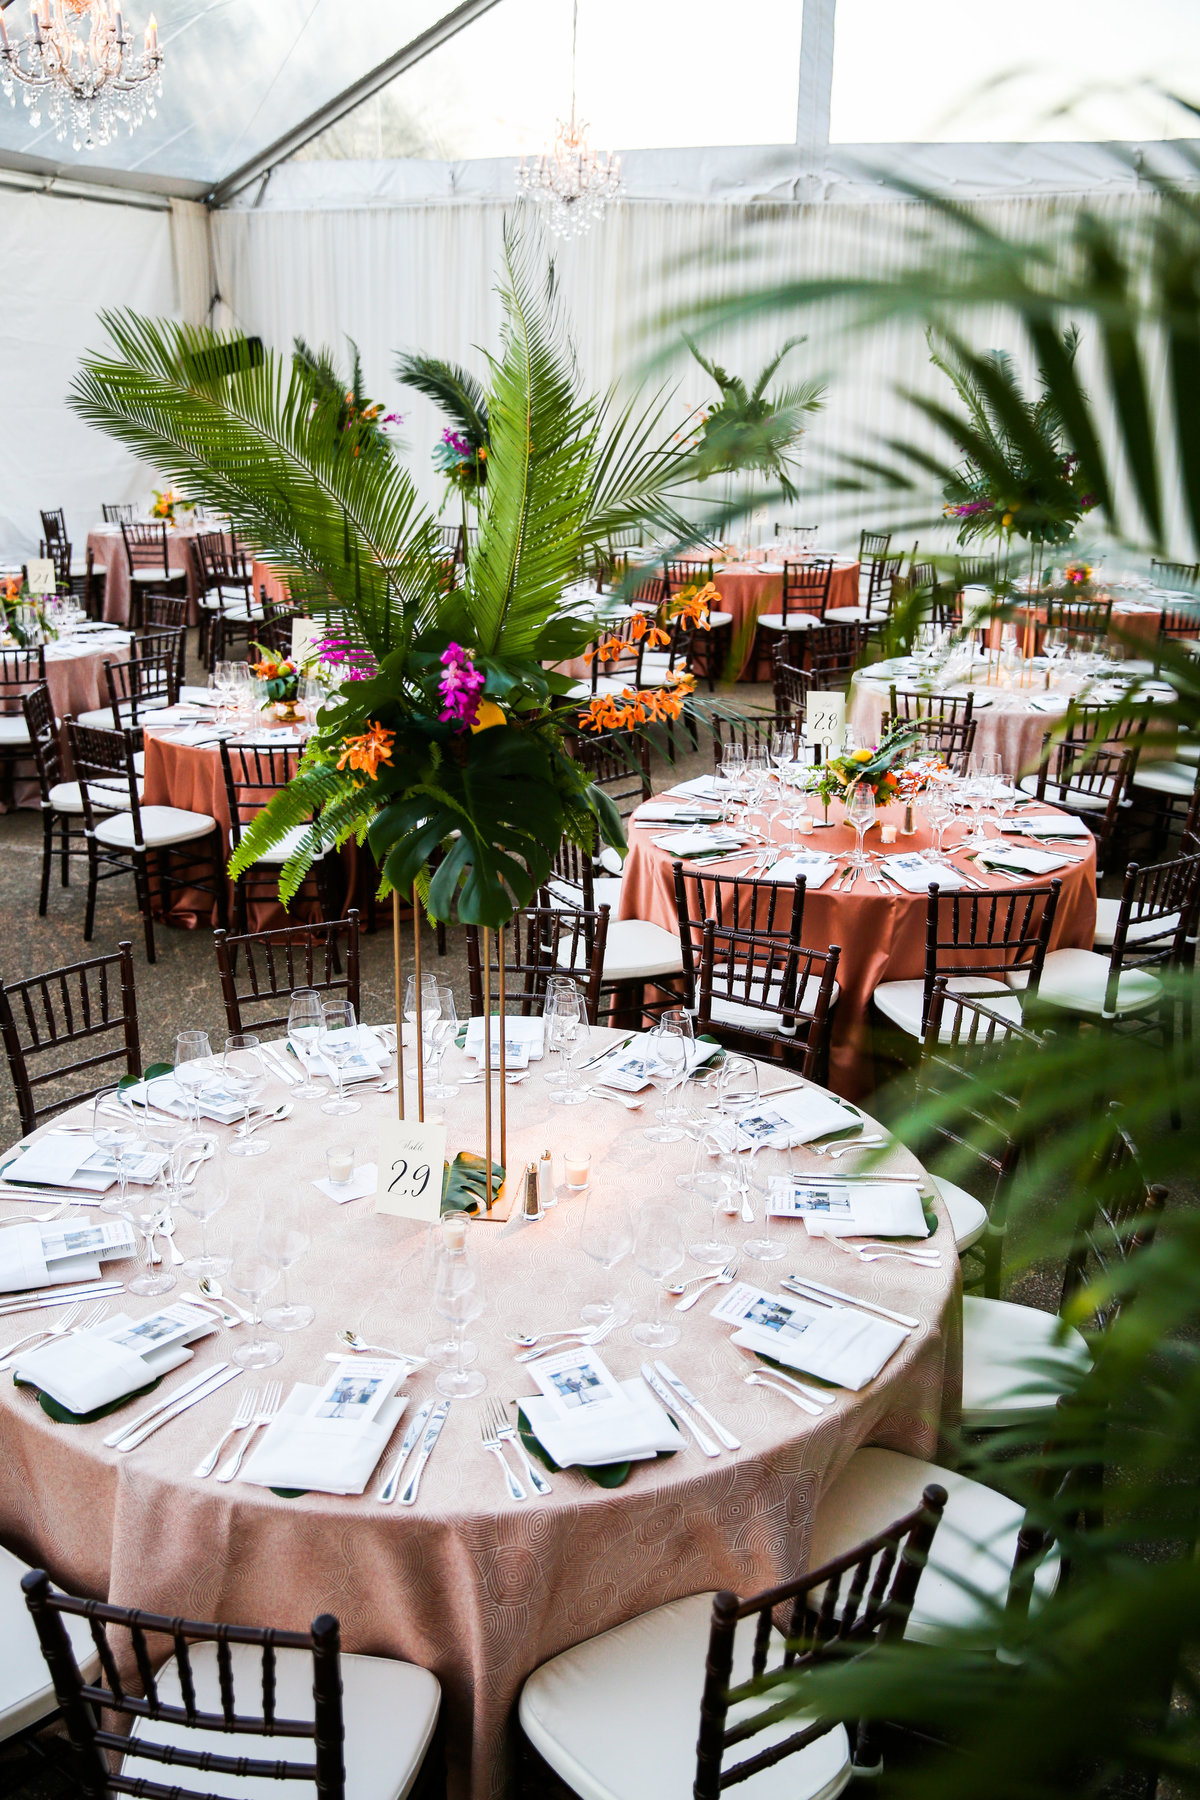 Conservancy Gala 2019 - Details  (41 of 237)